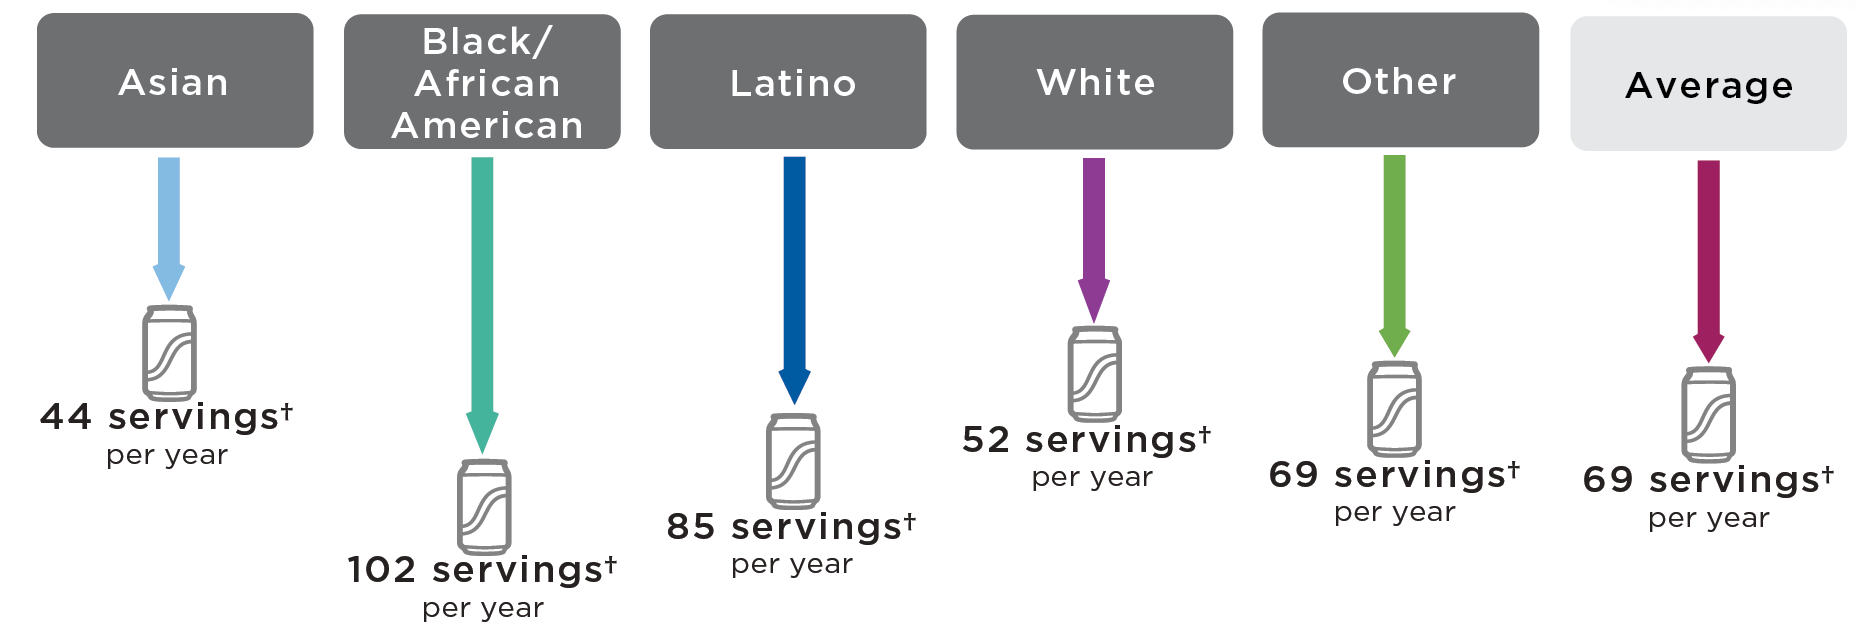 With a tax, sugary drink consumption would decrease the most among Latino and Black/African American Californians. On average, each Latino Californian would reduce consumption by 85 servings per year and each Black/African American Californian would reduce consumption by 102 servings per year. Asian Californians would reduce consumption an average of 44 12 ounce servings of sugary drinks per person per year; Black/African American Californians would reduce consumption an average of 102 12 ounce servings of sugary drinks per person per year; Latino Californians would reduce consumption an average of 85 12 ounce servings of sugary drinks per person per year; White Californians would reduce consumption an average of 52 12 ounce servings of sugary drinks per person per year; and Californians of Other races would reduce consumption an average of 69 12 ounce servings of sugary drinks per person per year